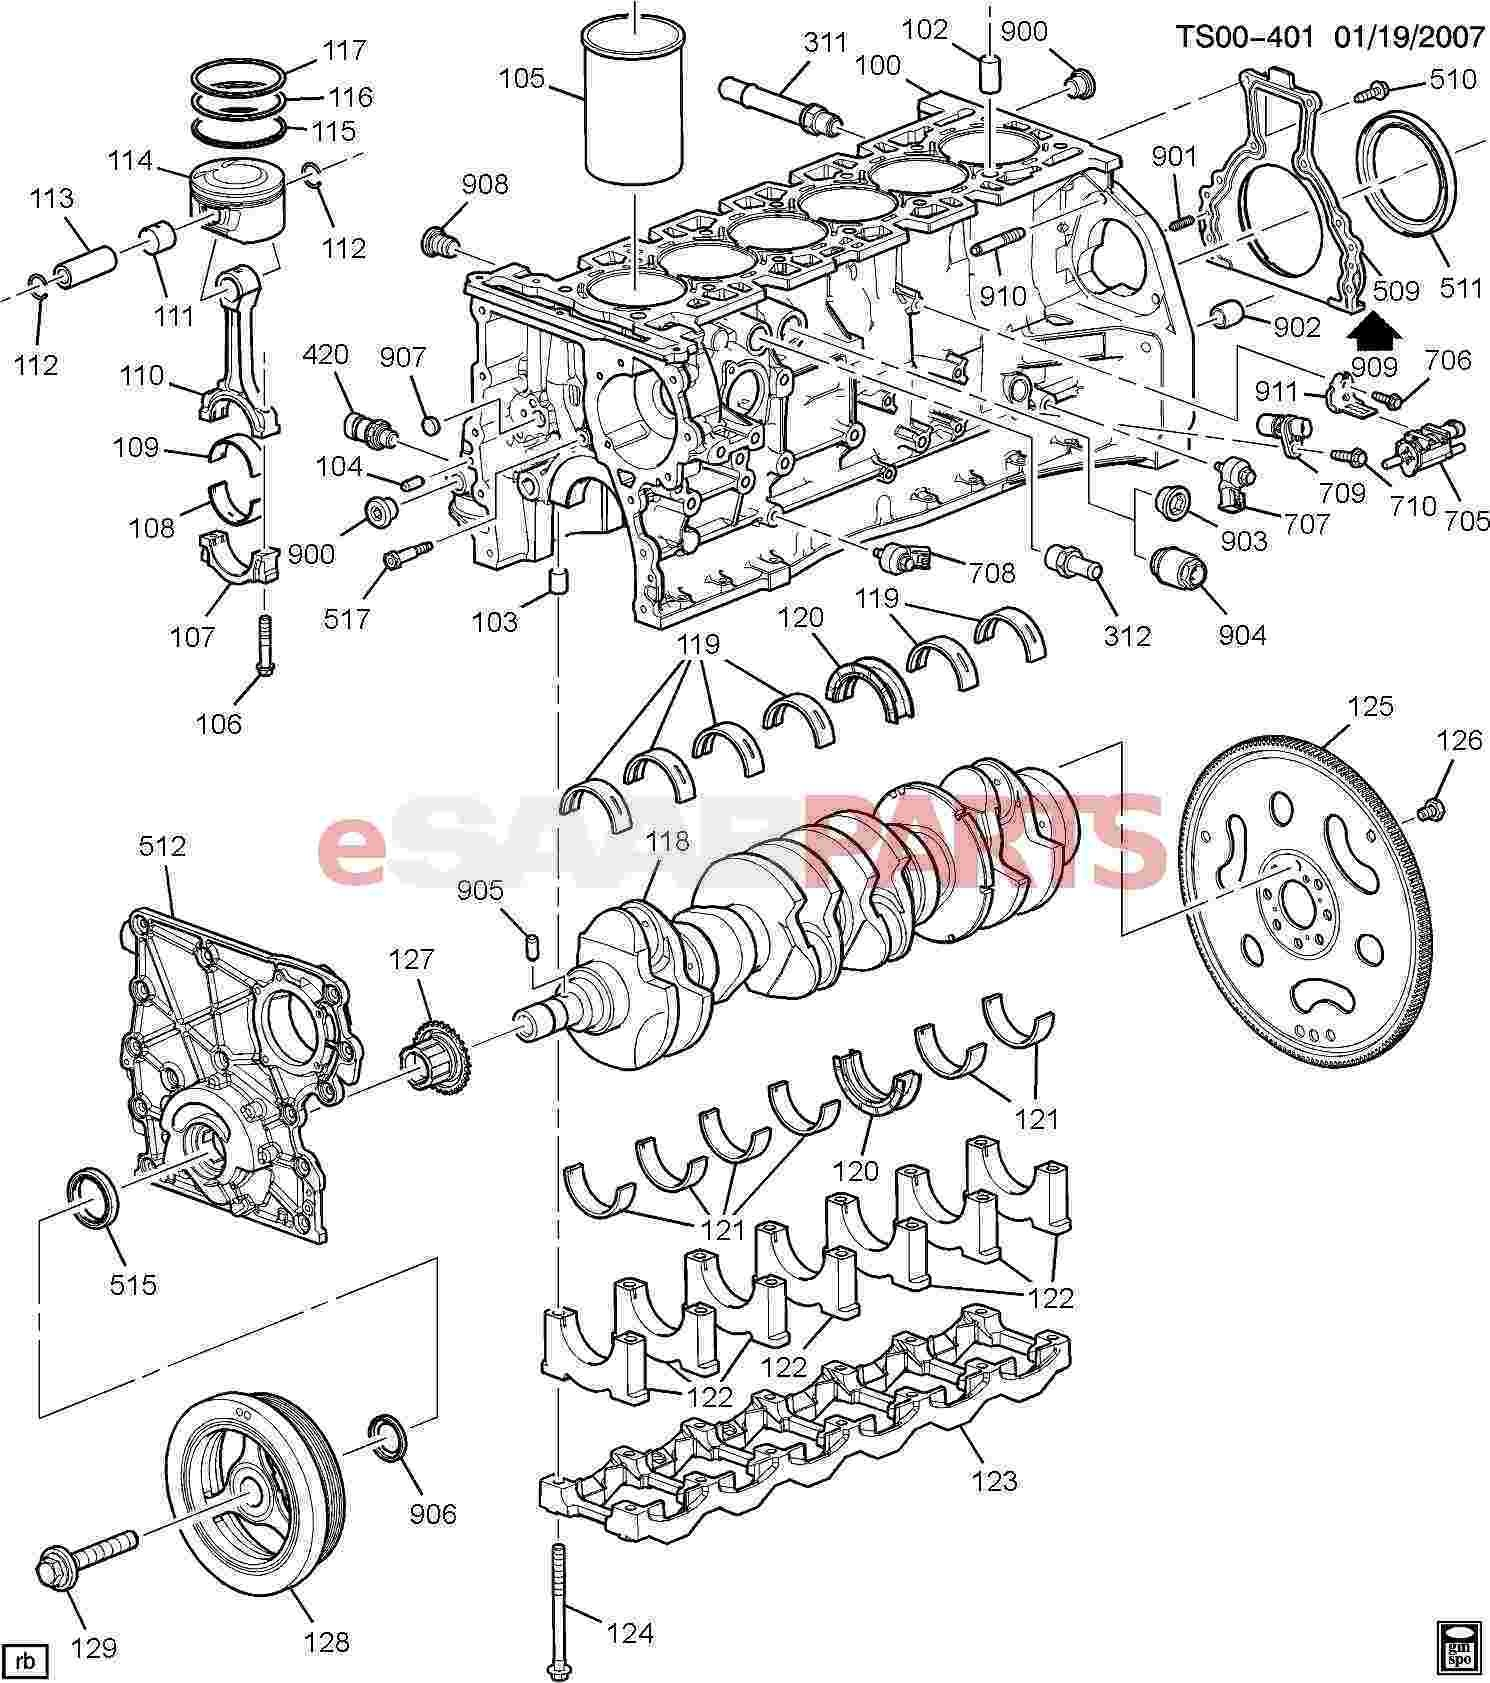 7 3 Engine Parts Diagram Esaabparts Saab 9 7x Engine Parts